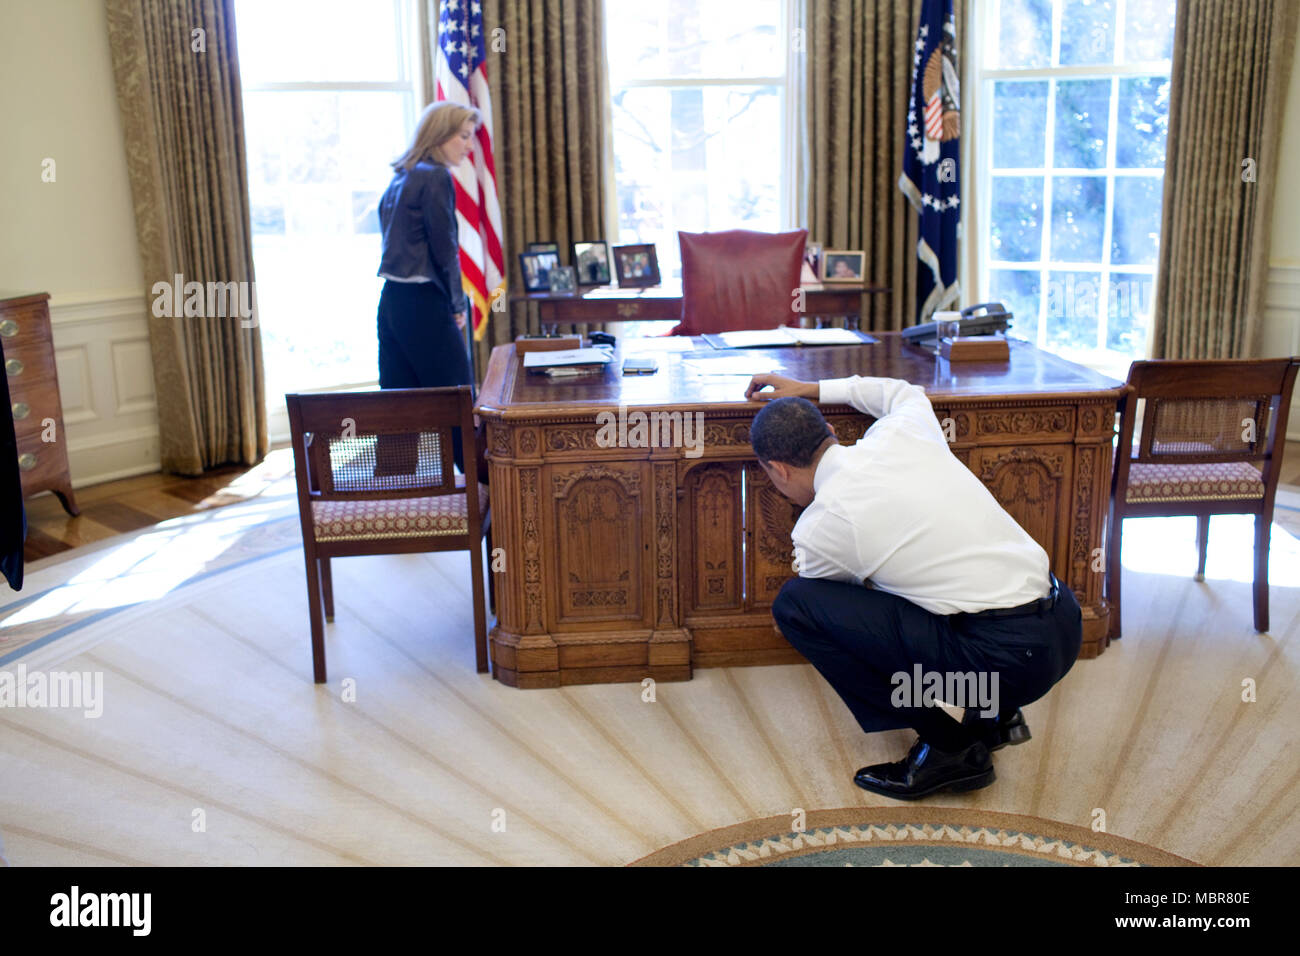 oval office july 2015. President Barack Obama Examines The Resolute Desk On March 3, 2009, While Visiting With Oval Office July 2015